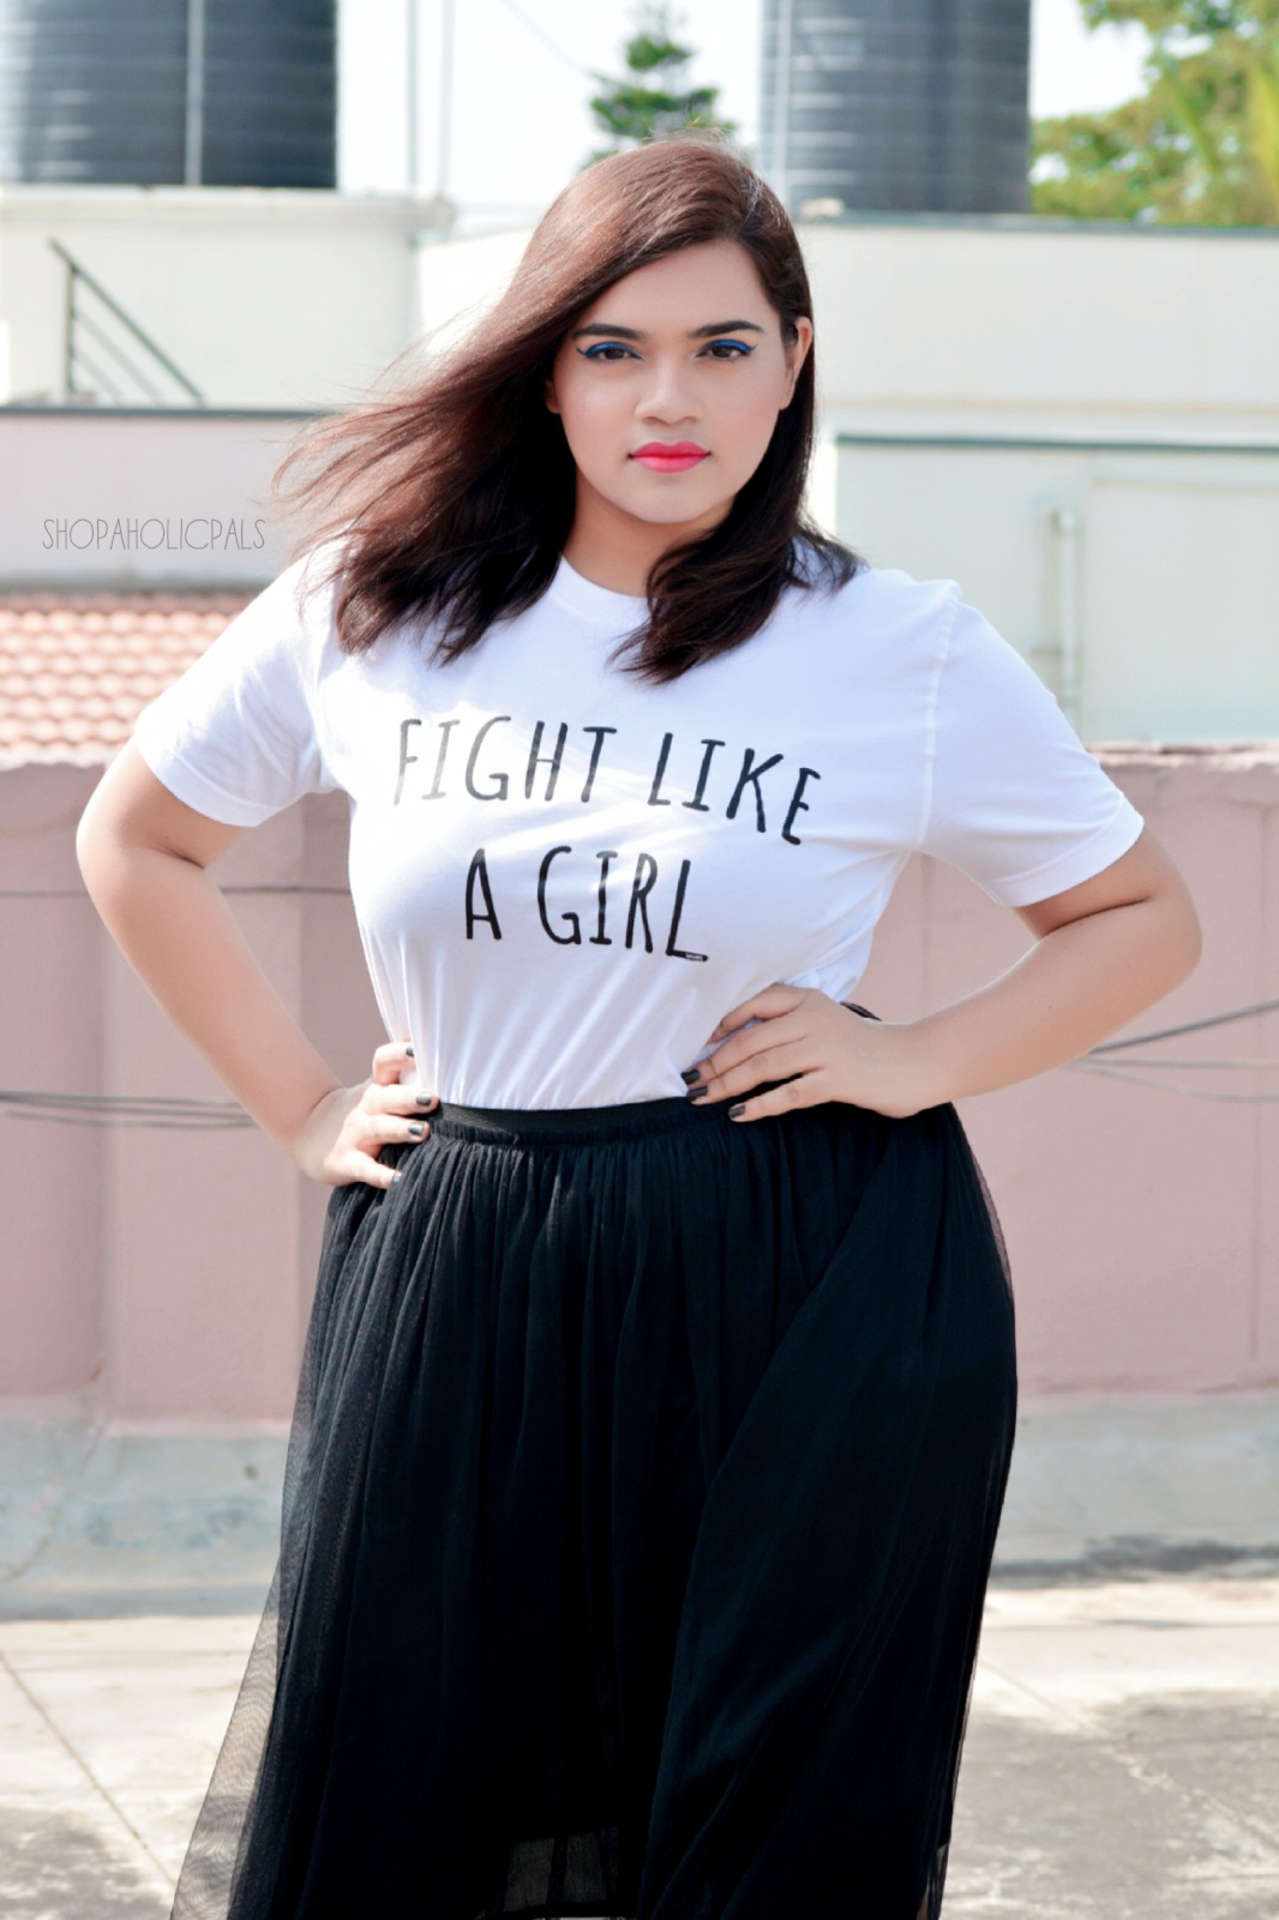 Fight Like A Girl image